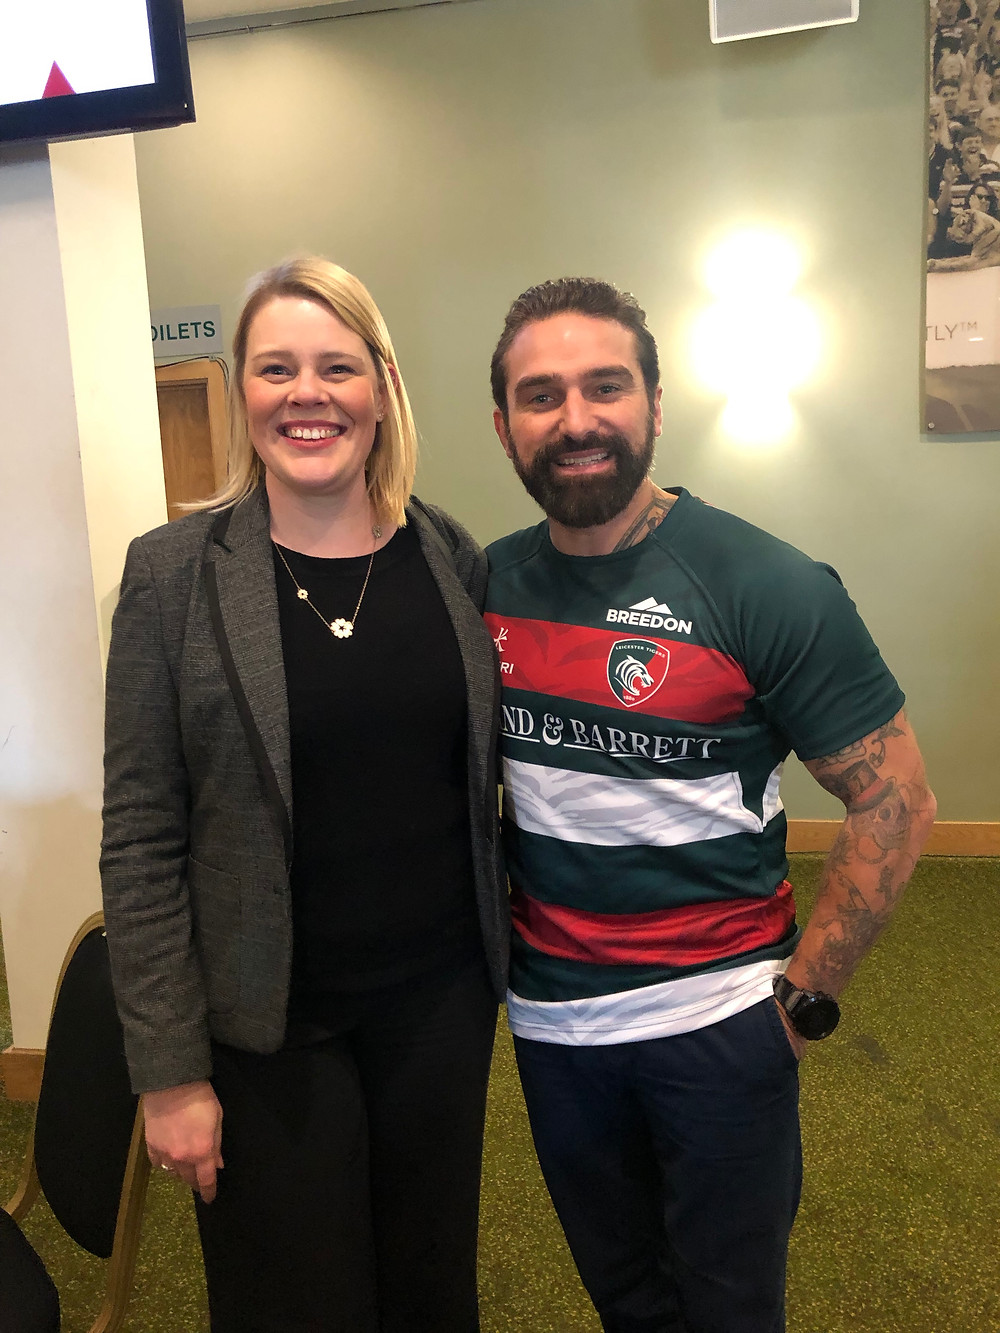 Cheryl Willey & Ant Middleton of SAS: Who Dares Wins